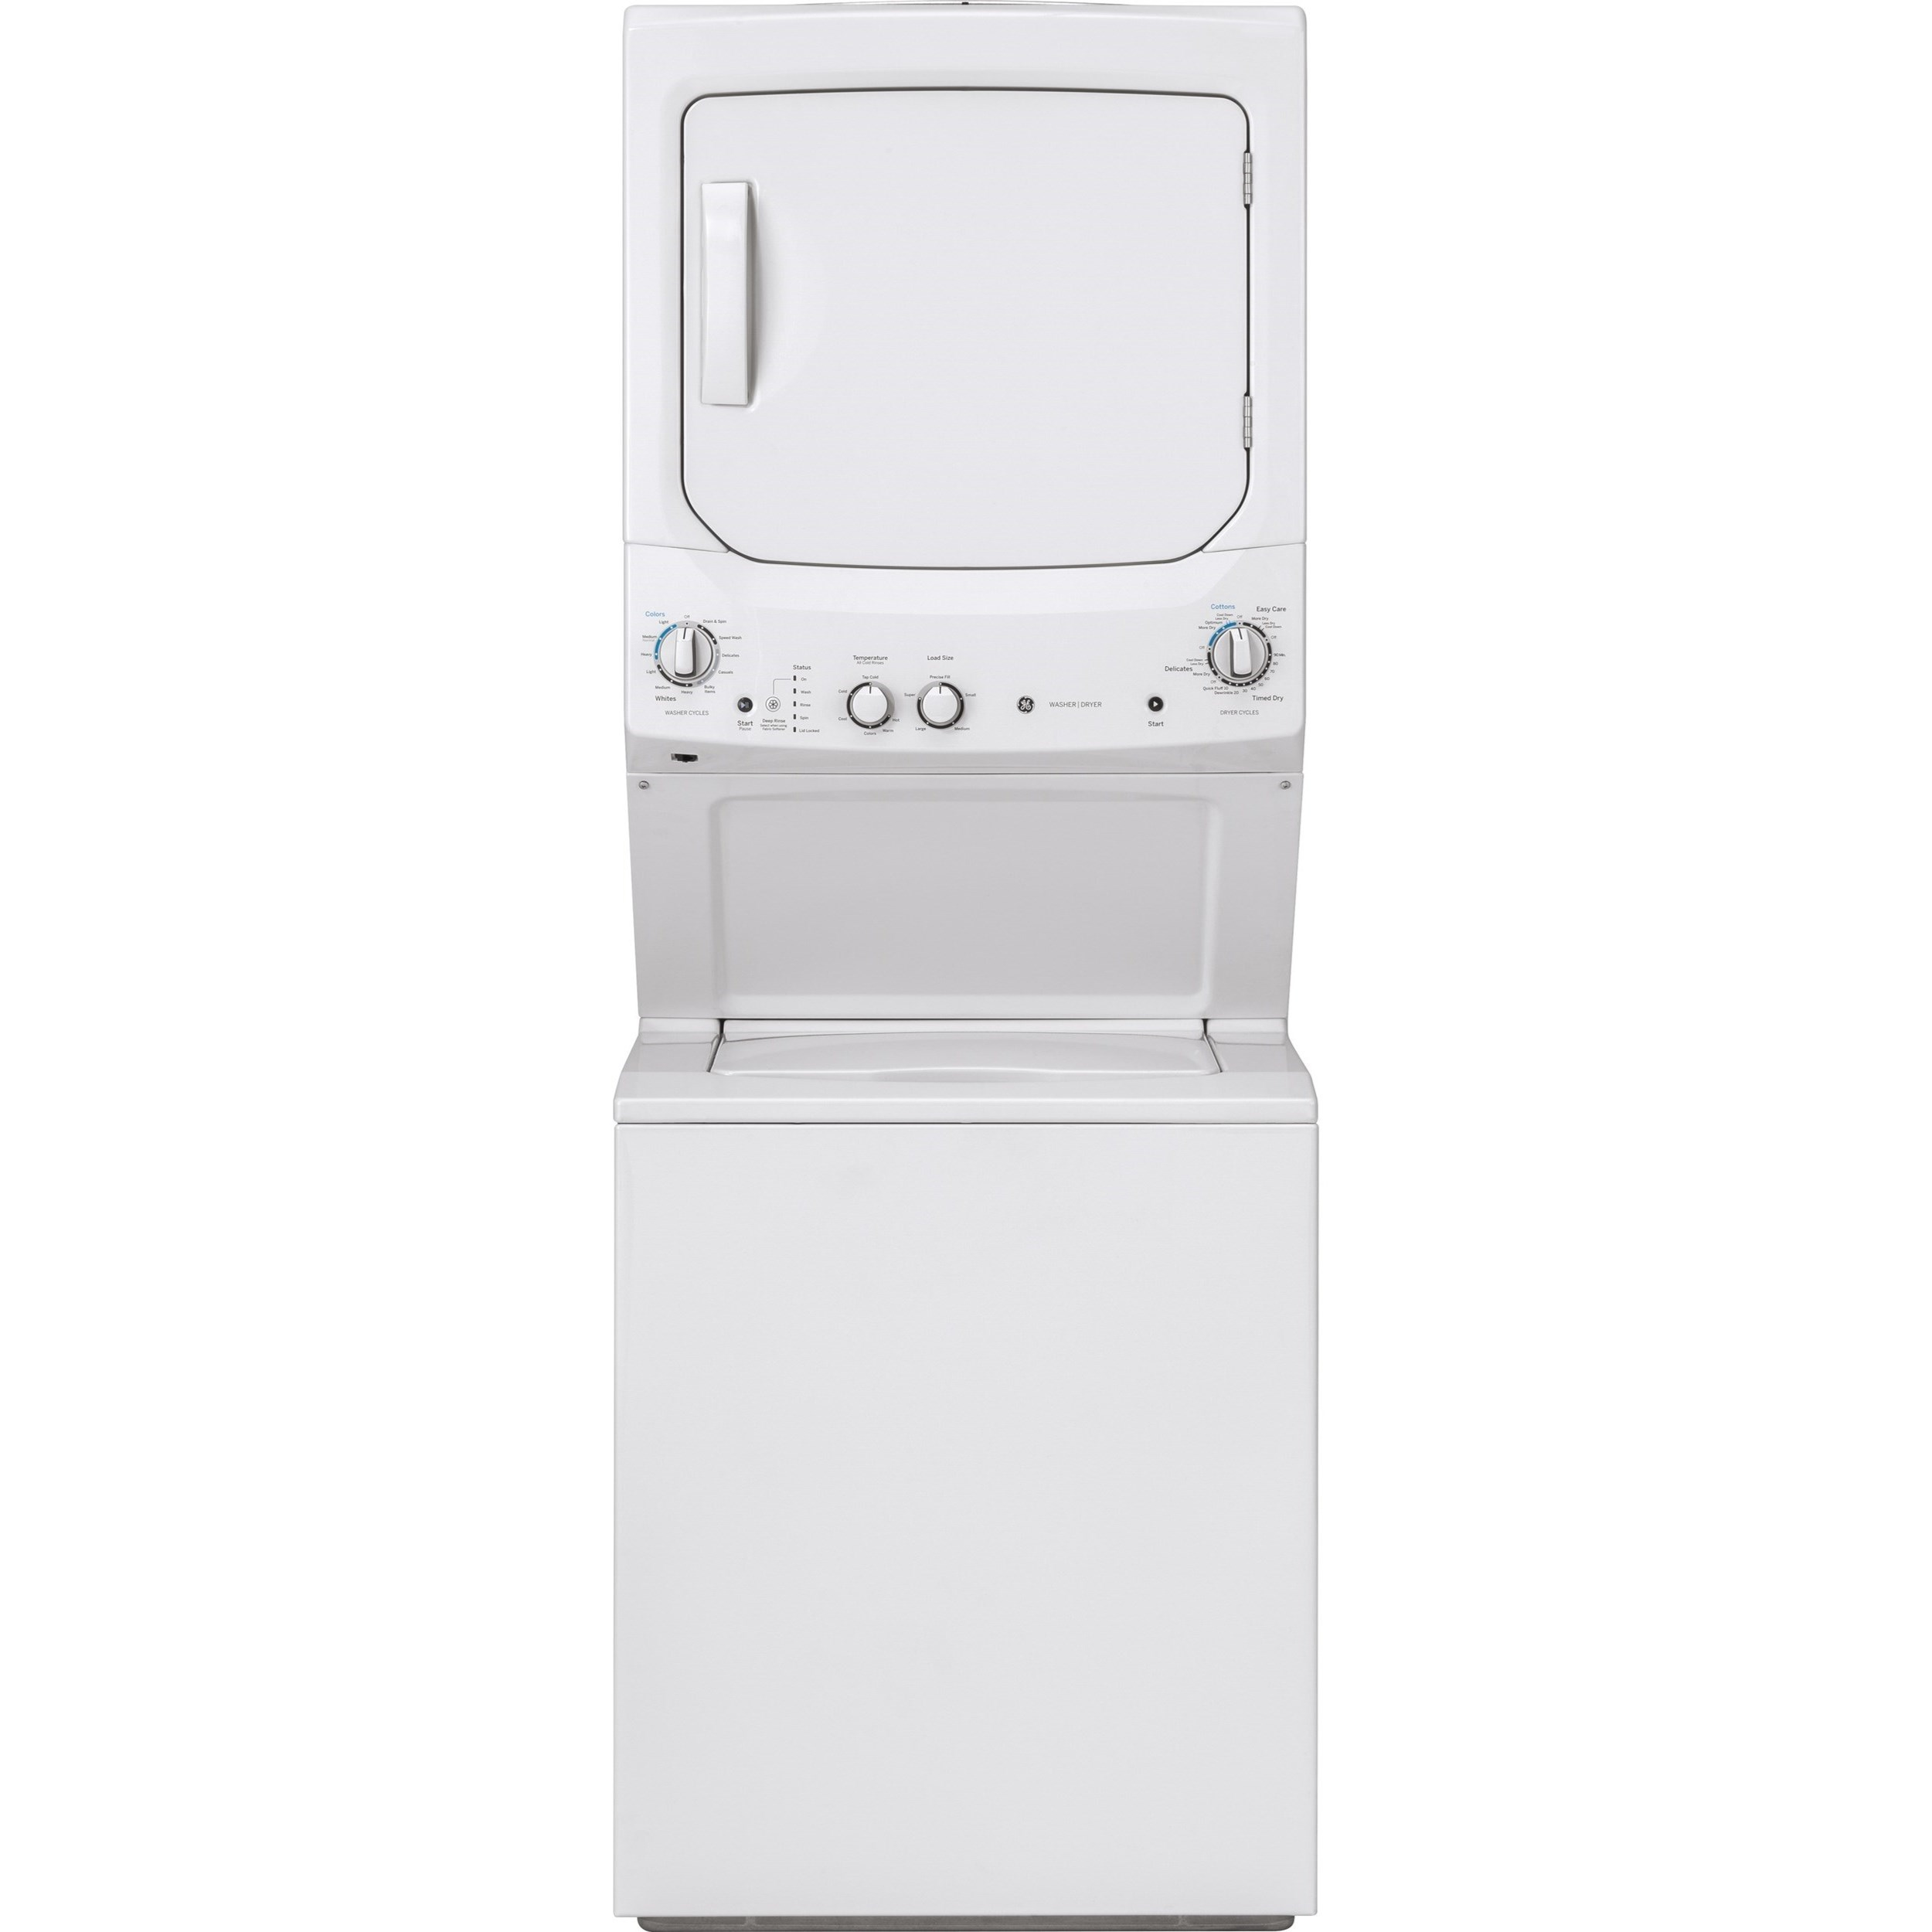 Washer and Dryer Sets Spacemaker® Washer and Dryer Combo by GE Appliances at Westrich Furniture & Appliances